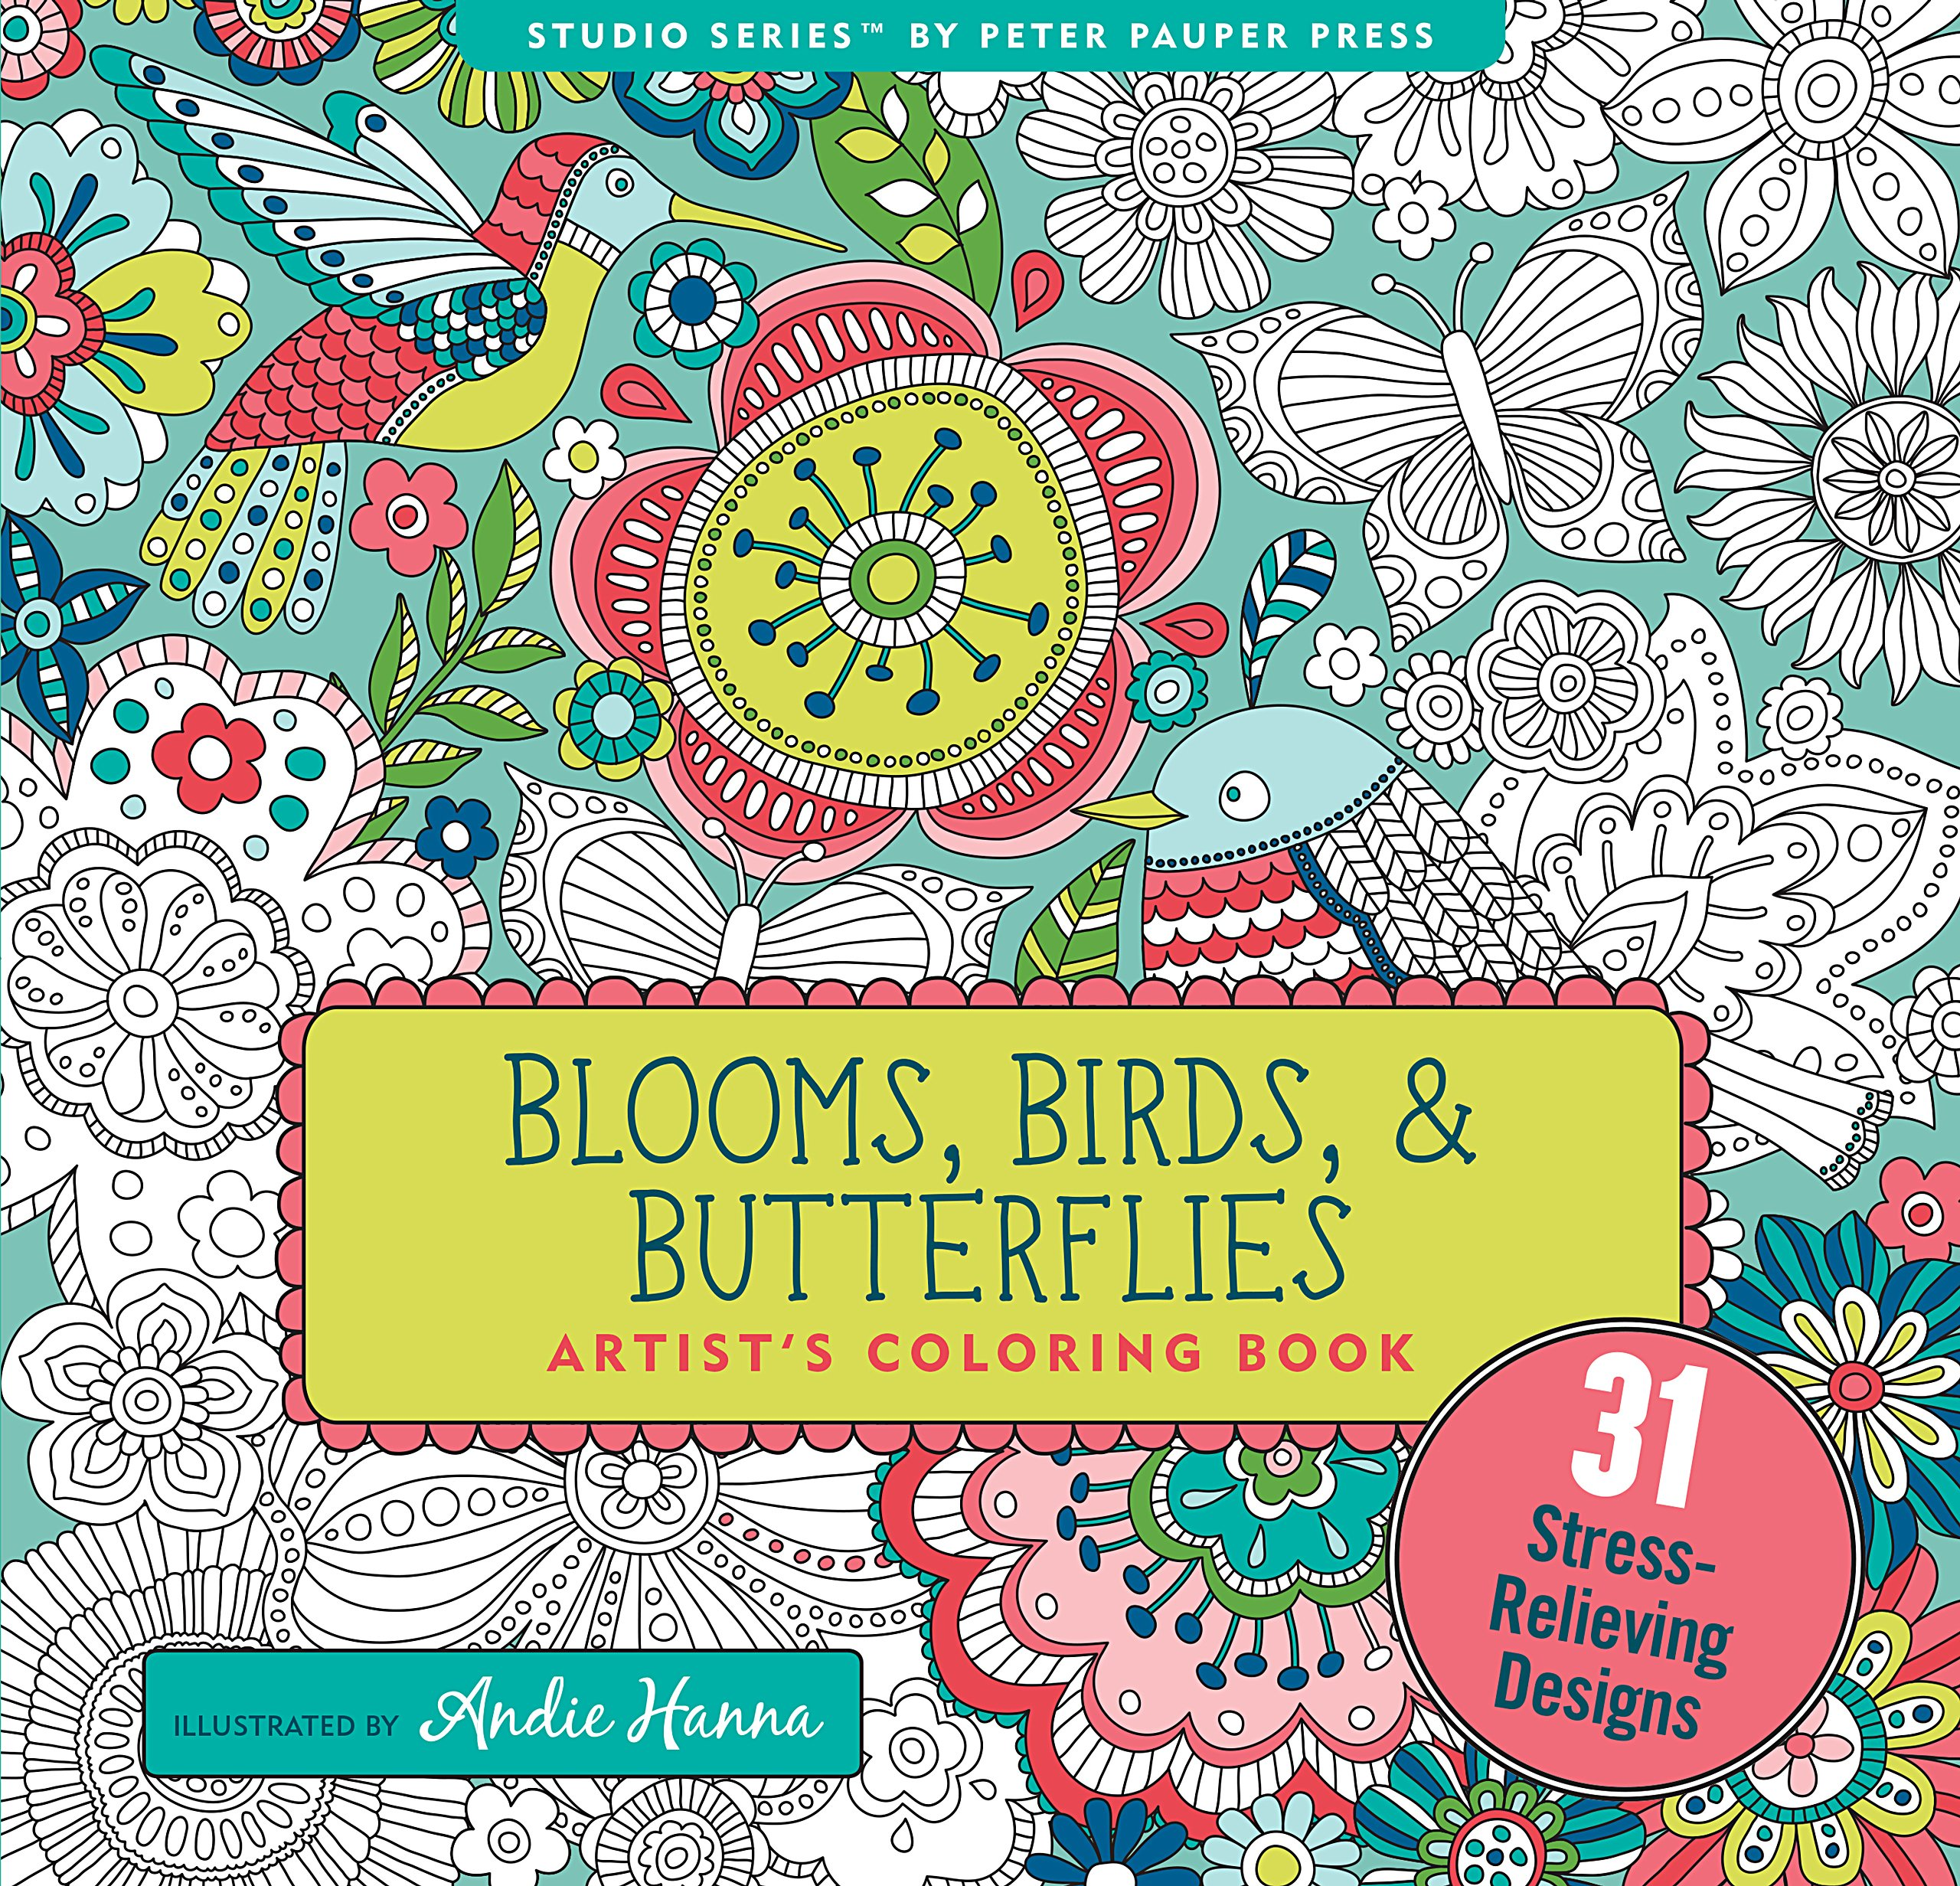 Blooms, Birds, and Butterflies Adult Coloring Book (31 stress-relieving designs) (Studio Series Artist's Coloring Book) pdf